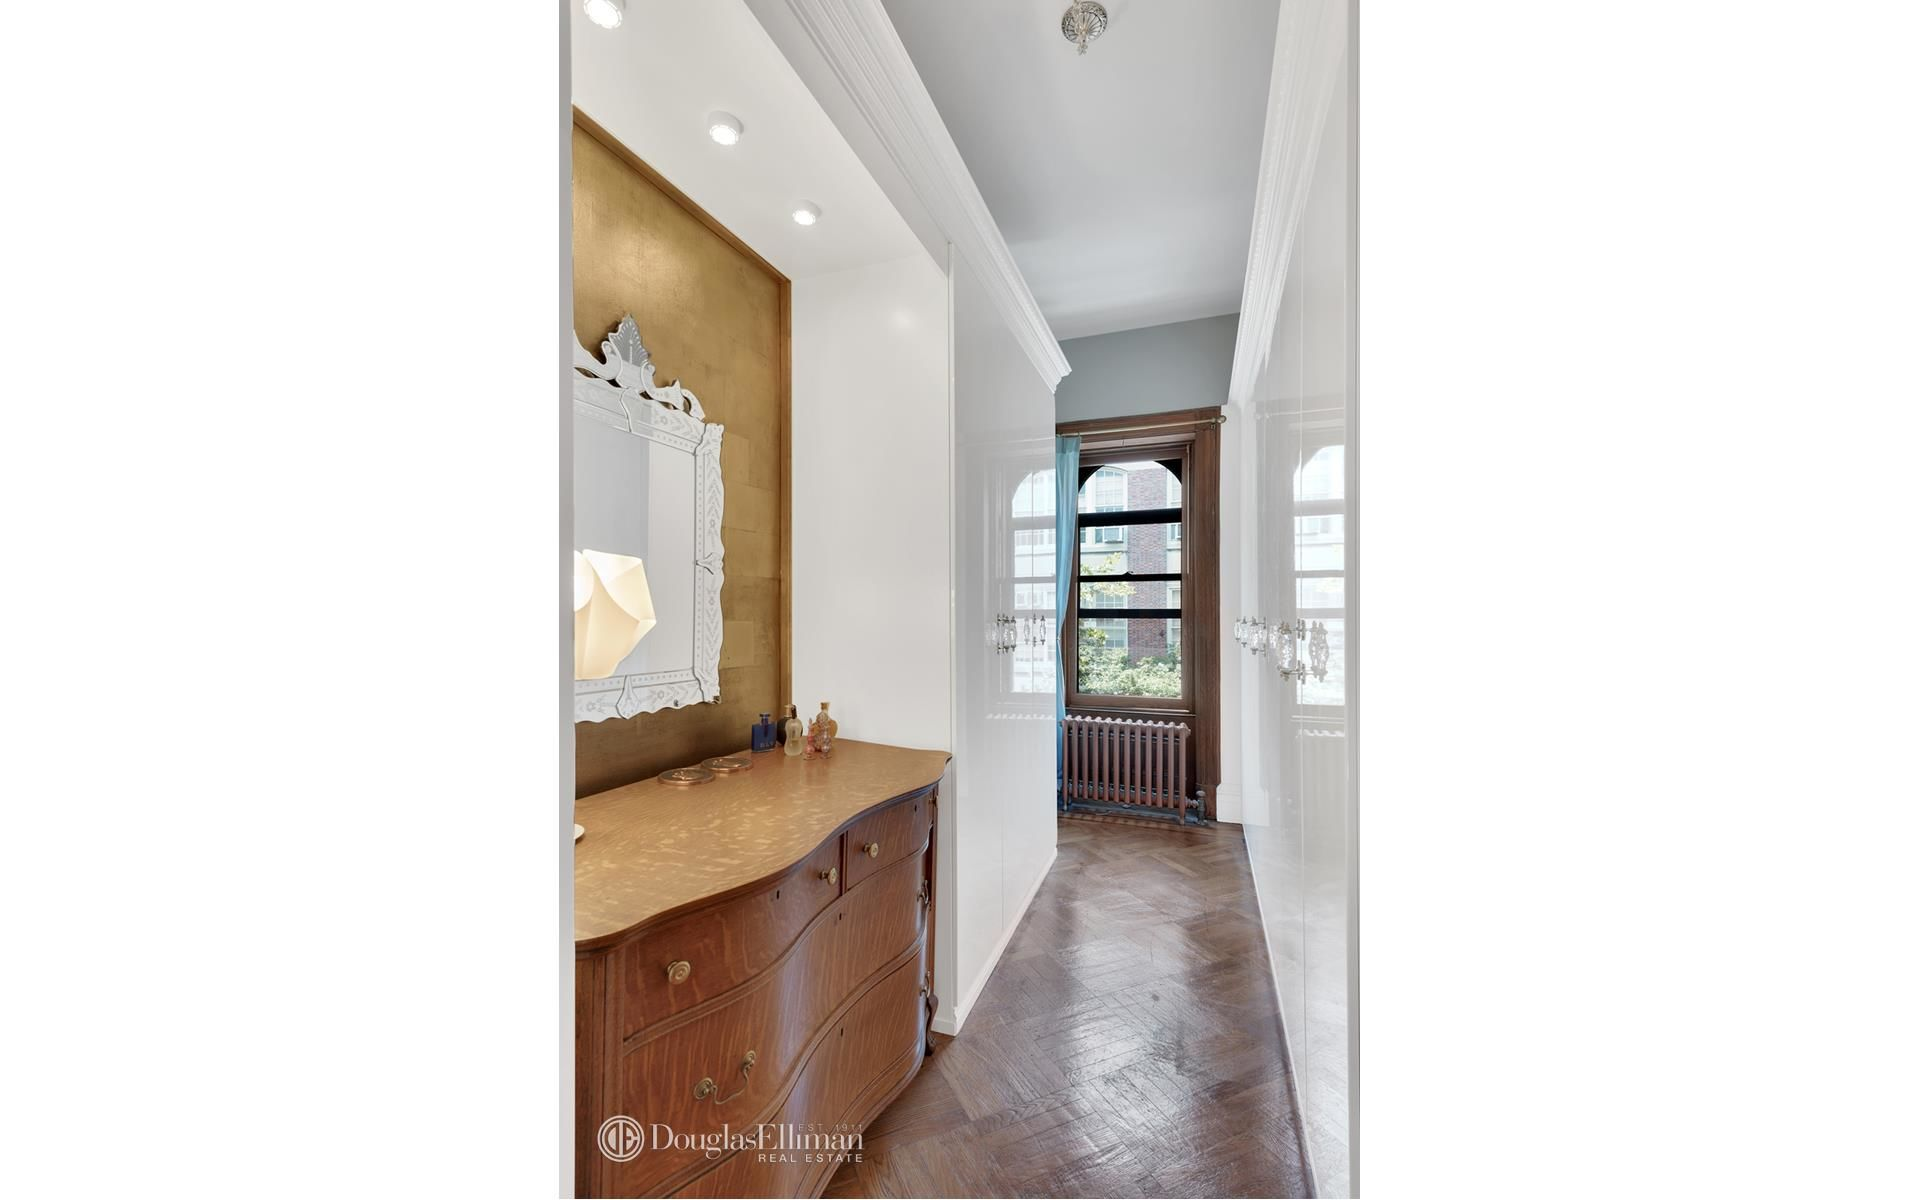 479 4th St Photo 10 - ELLIMAN-3378703